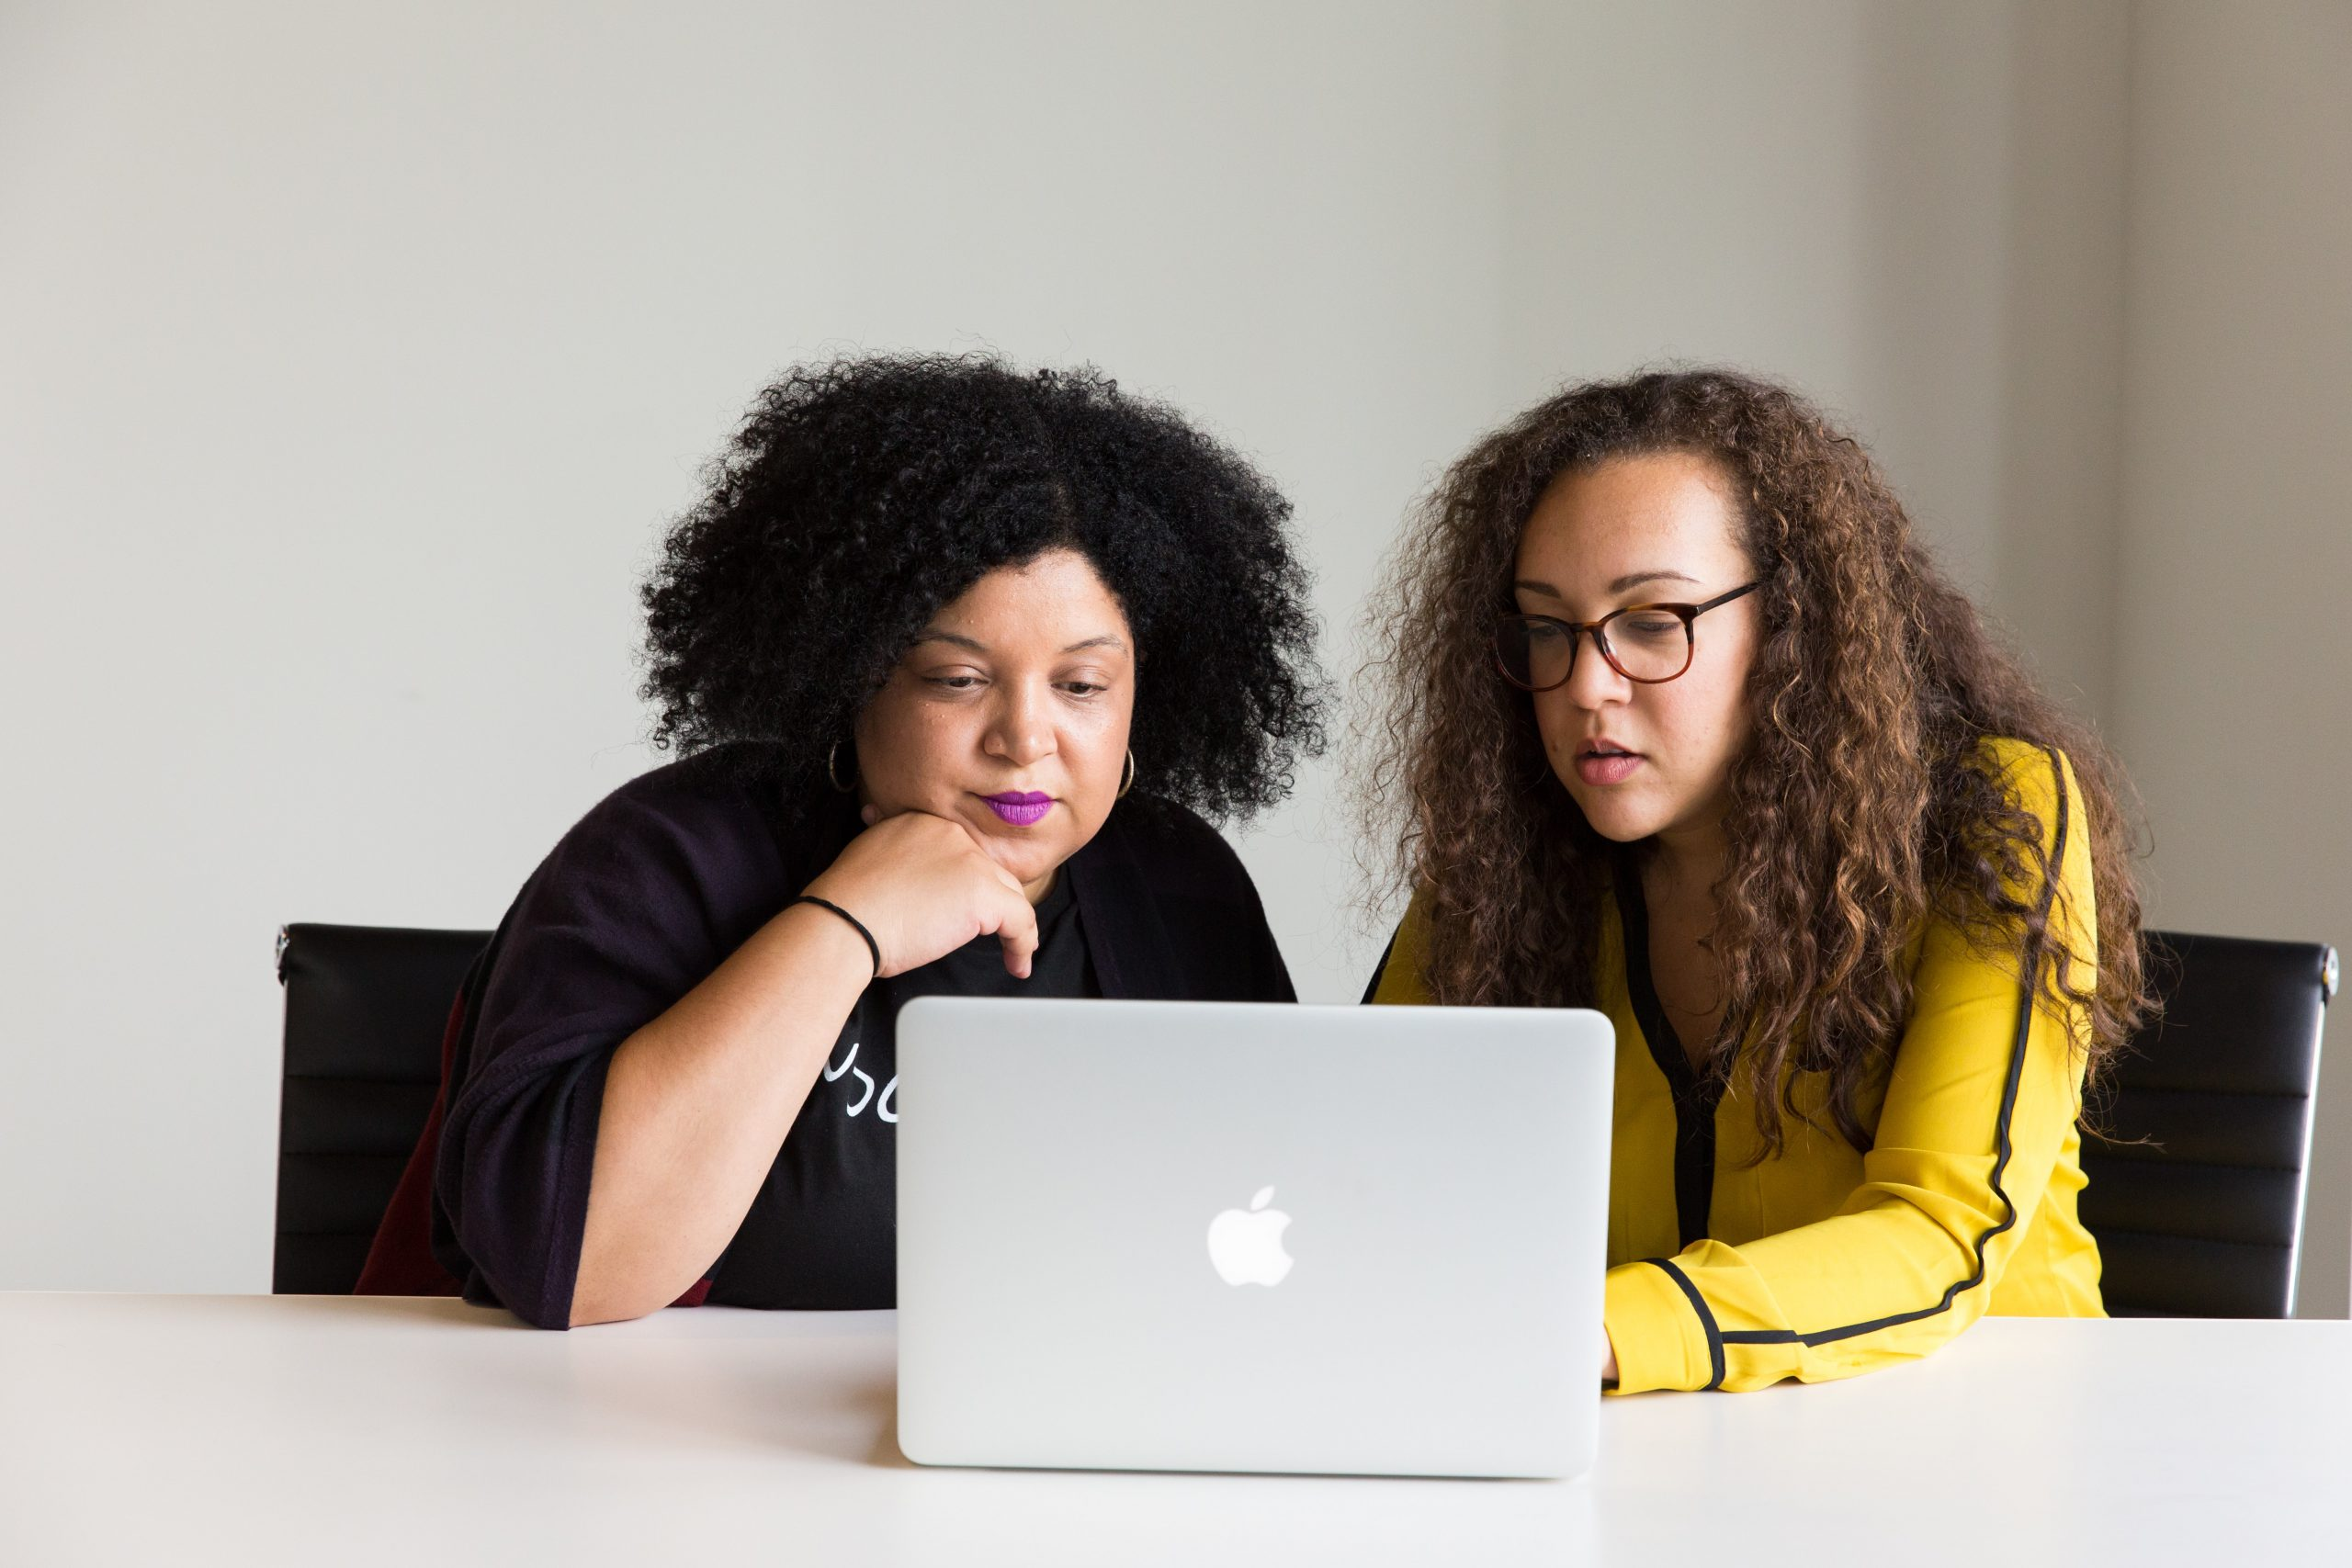 two women working on a laptop together